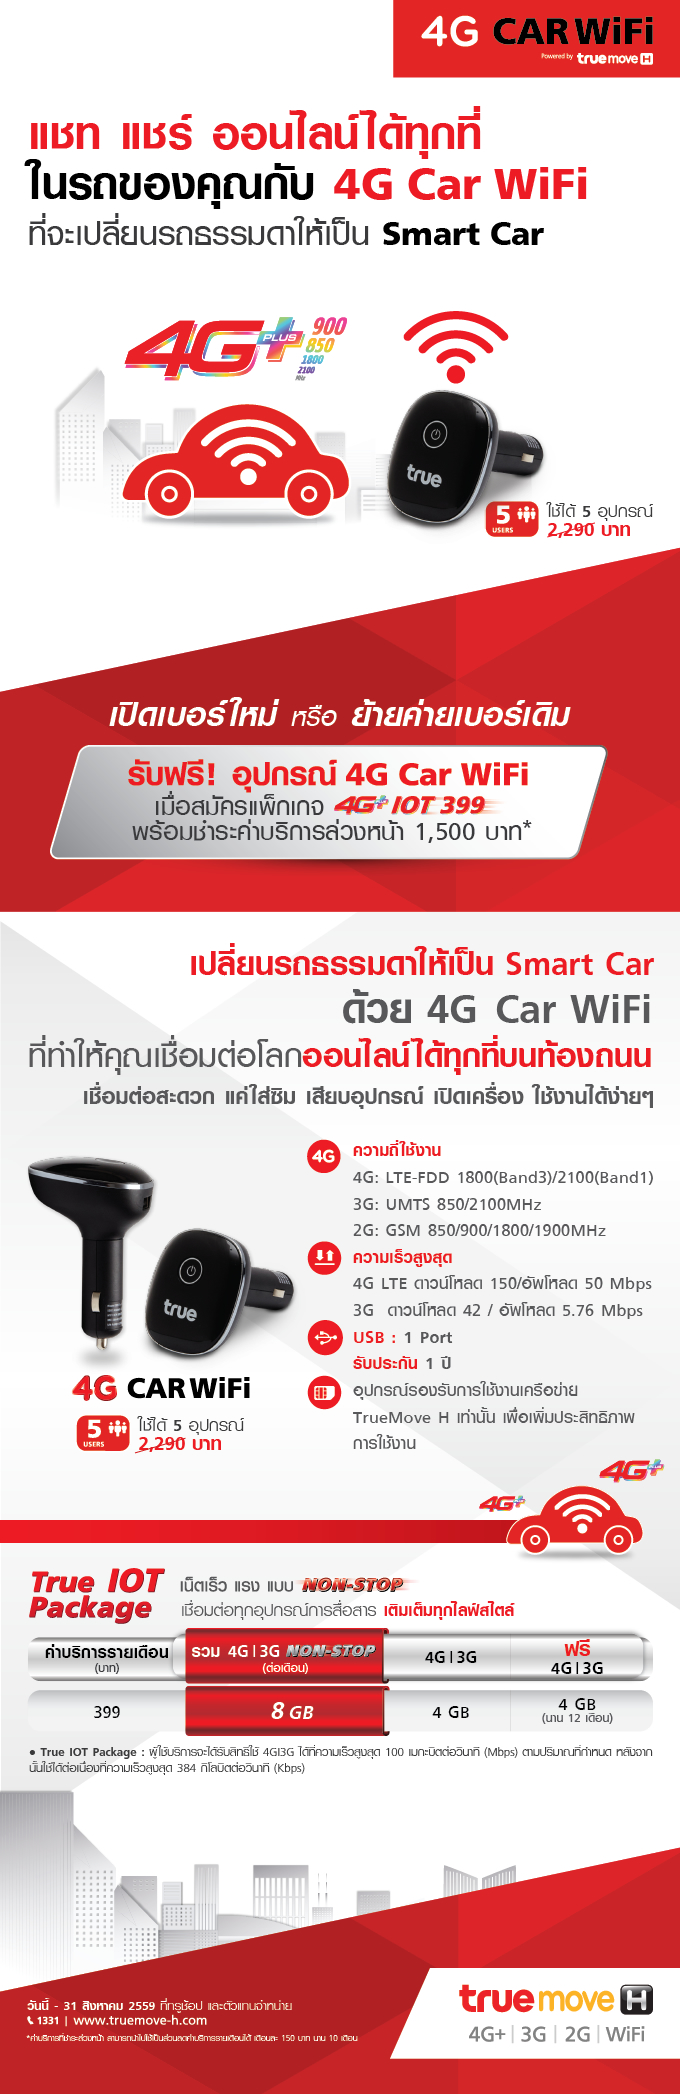 carwifi_680_th